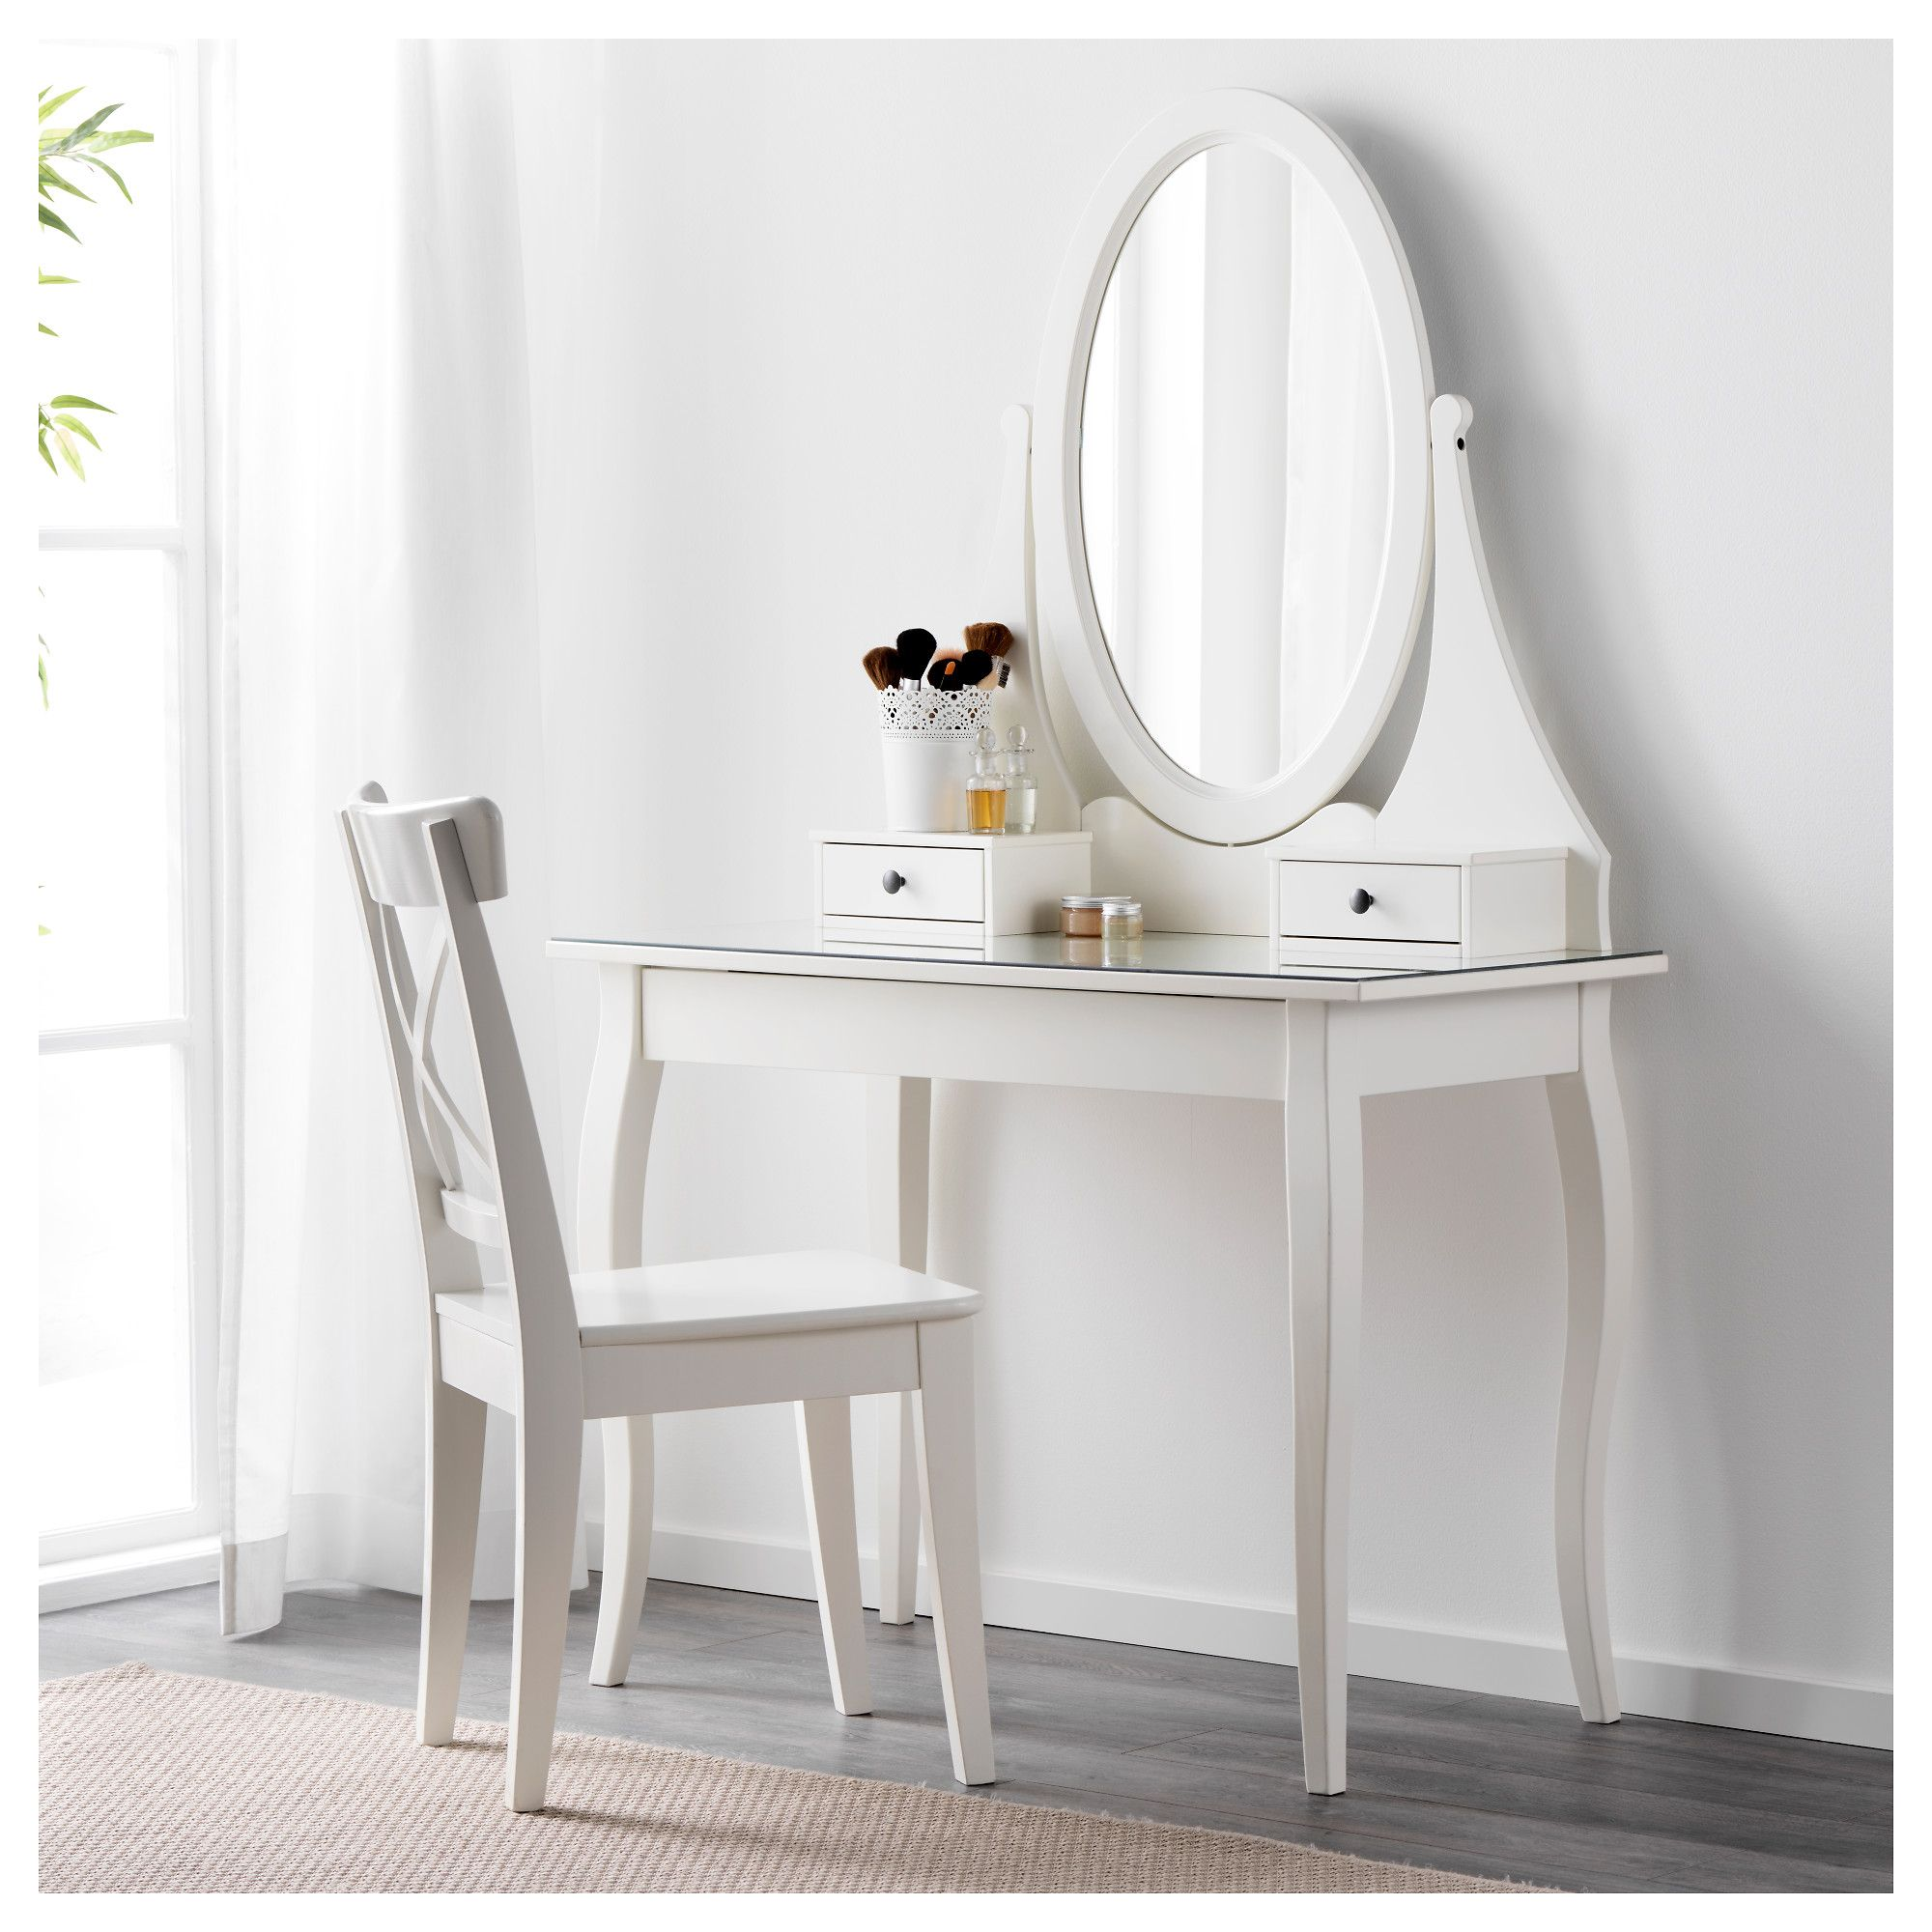 Ikea Hemnes Dressing Table With Mirror More Room Ideas